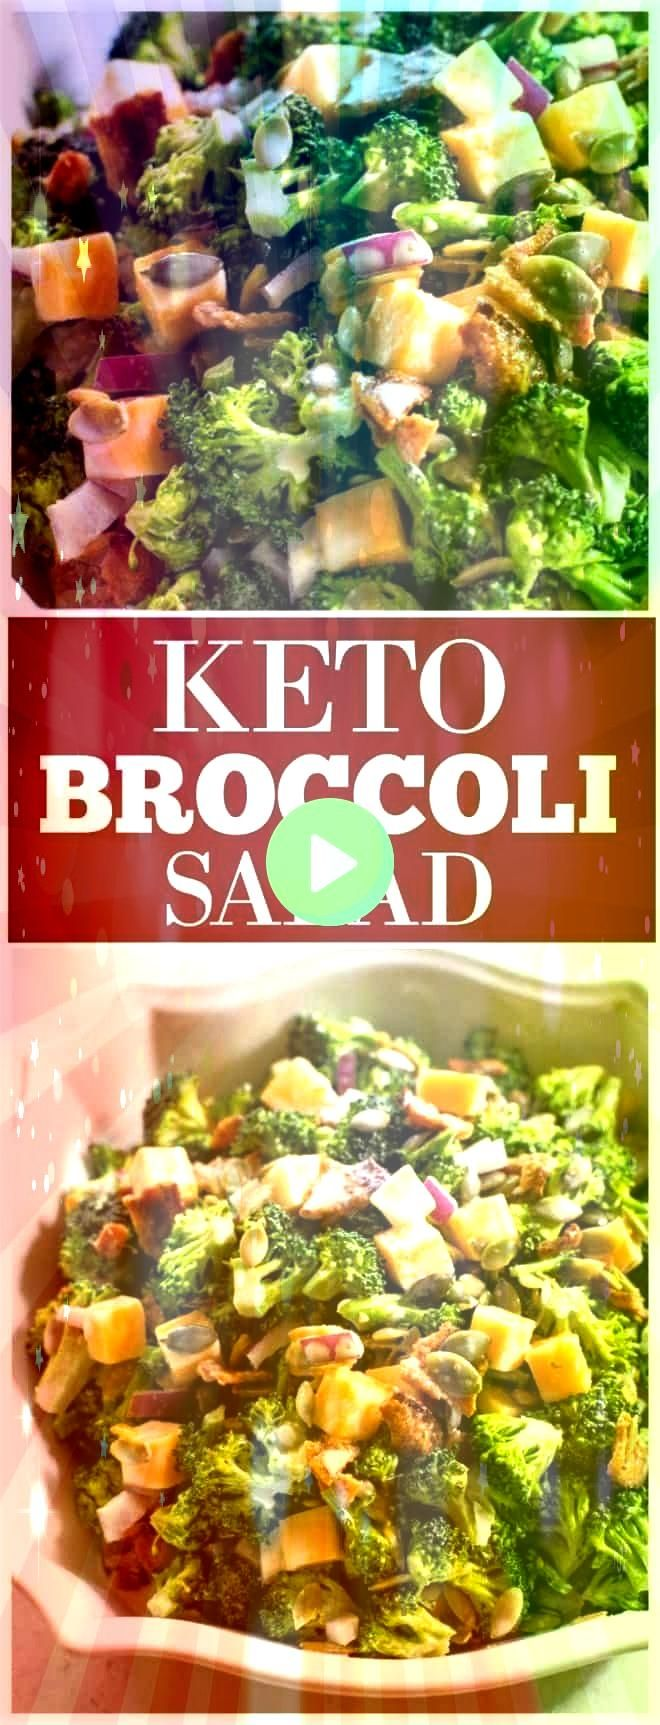 Salad  who says you cant have your favorite potluck side dish when on the Keto dietKeto Broccoli Salad  who says you cant have your favorite potluck side dish when on the...